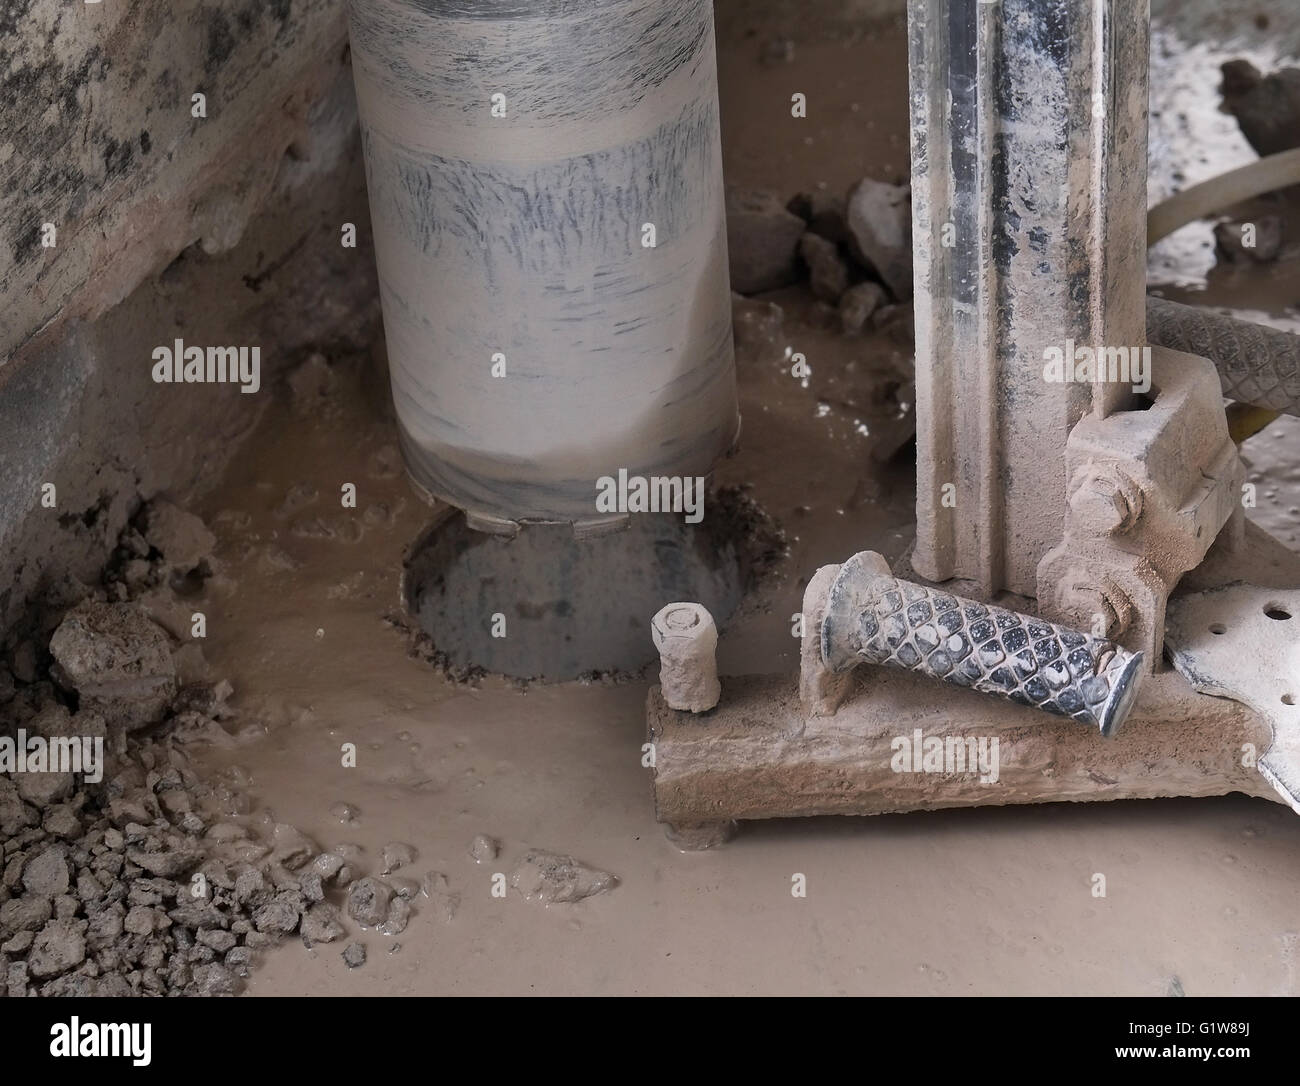 Large drill used for boring holes in concrete structures, similar to those used in recent large robberies. 1st May Stock Photo